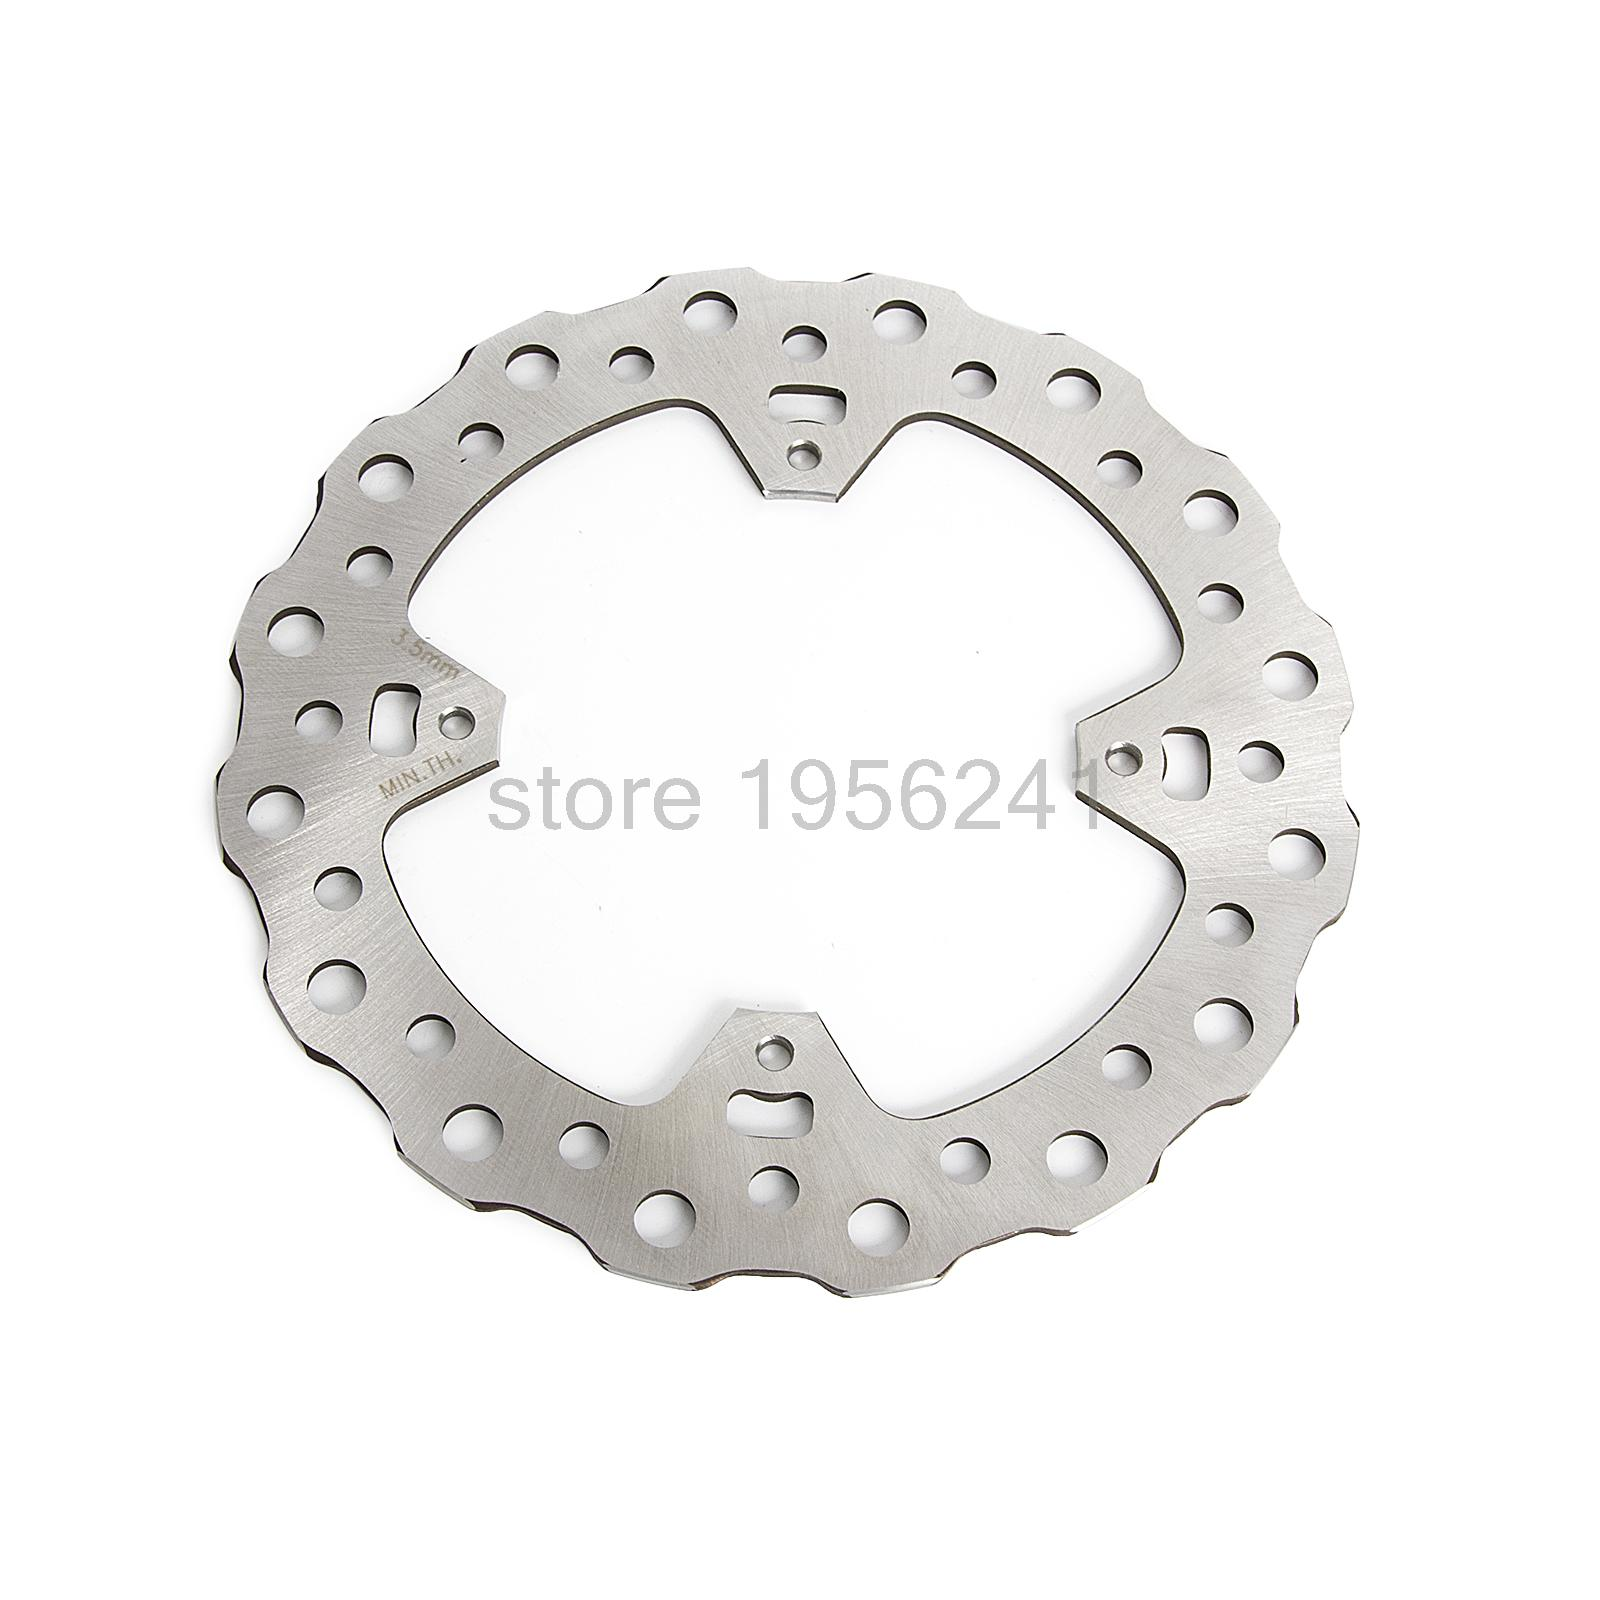 Motorcycle Rear Brake Disc Rotor For Honda CR125 CR250 2002-2007 CRF250 2004-2017 CRF450 2002-2017 CRF450X 2005-2017 CRF 450X for honda crf 250r 450r 2004 2006 crf 250x 450x 2004 2015 red motorcycle dirt bike off road cnc pivot brake clutch lever